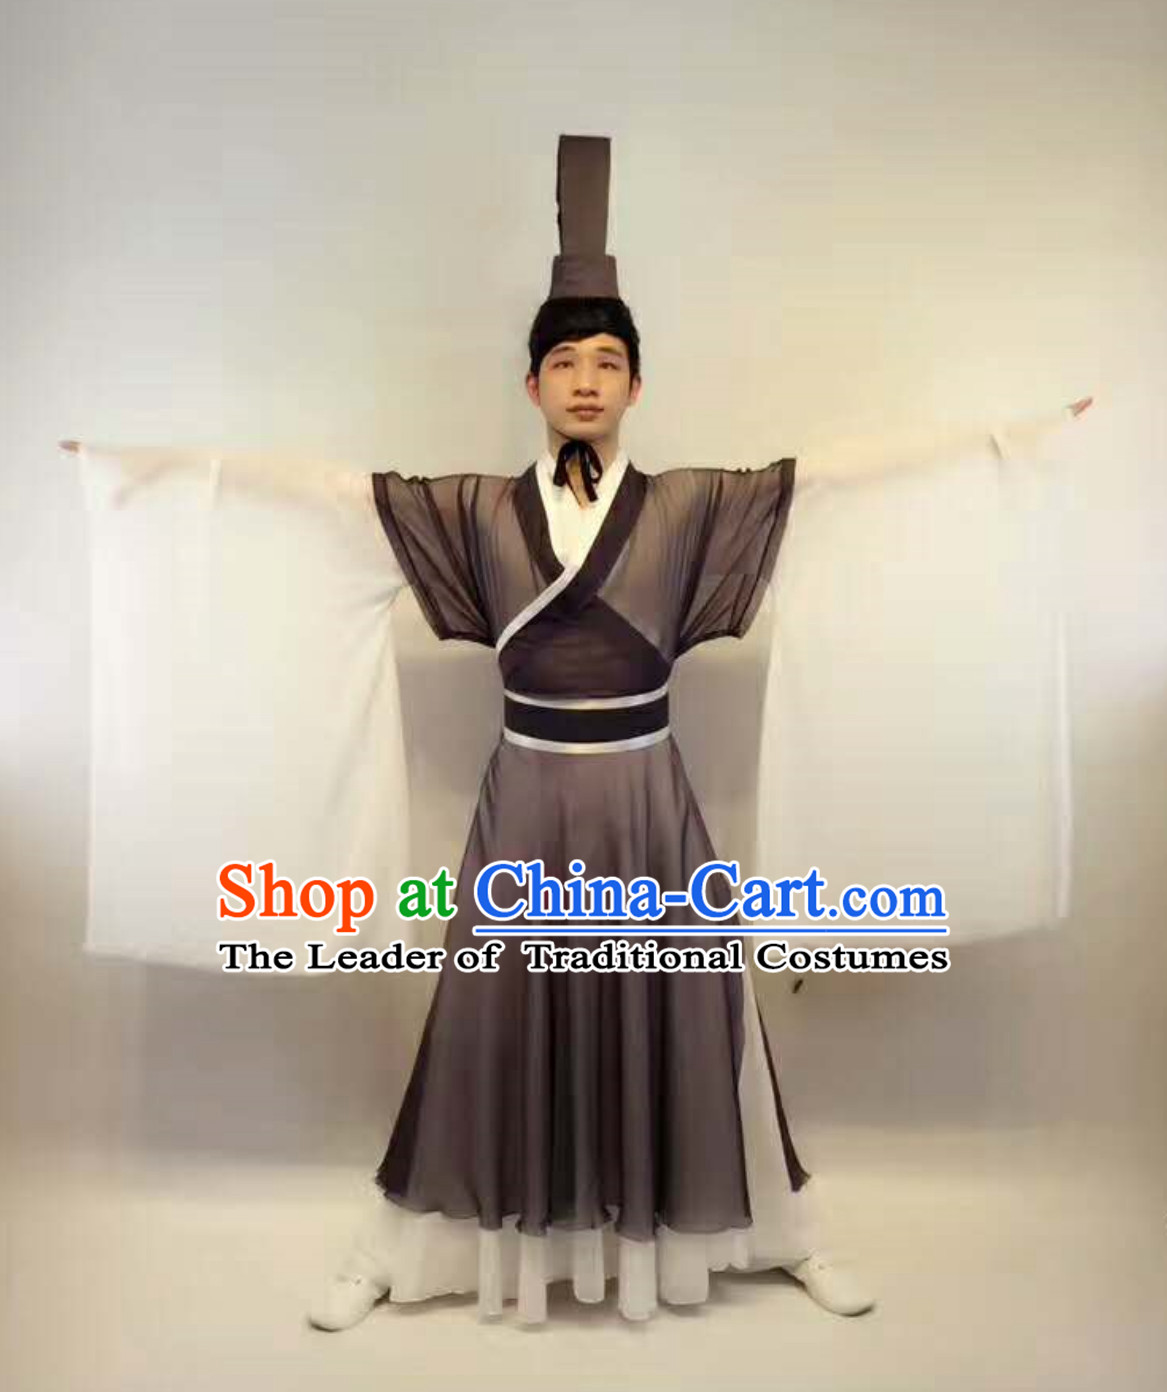 Professional Stage Performance Costumes Made to Order Custom Tailored Costumes Ancient Chinese Scholar Garment and Hat Complete Set